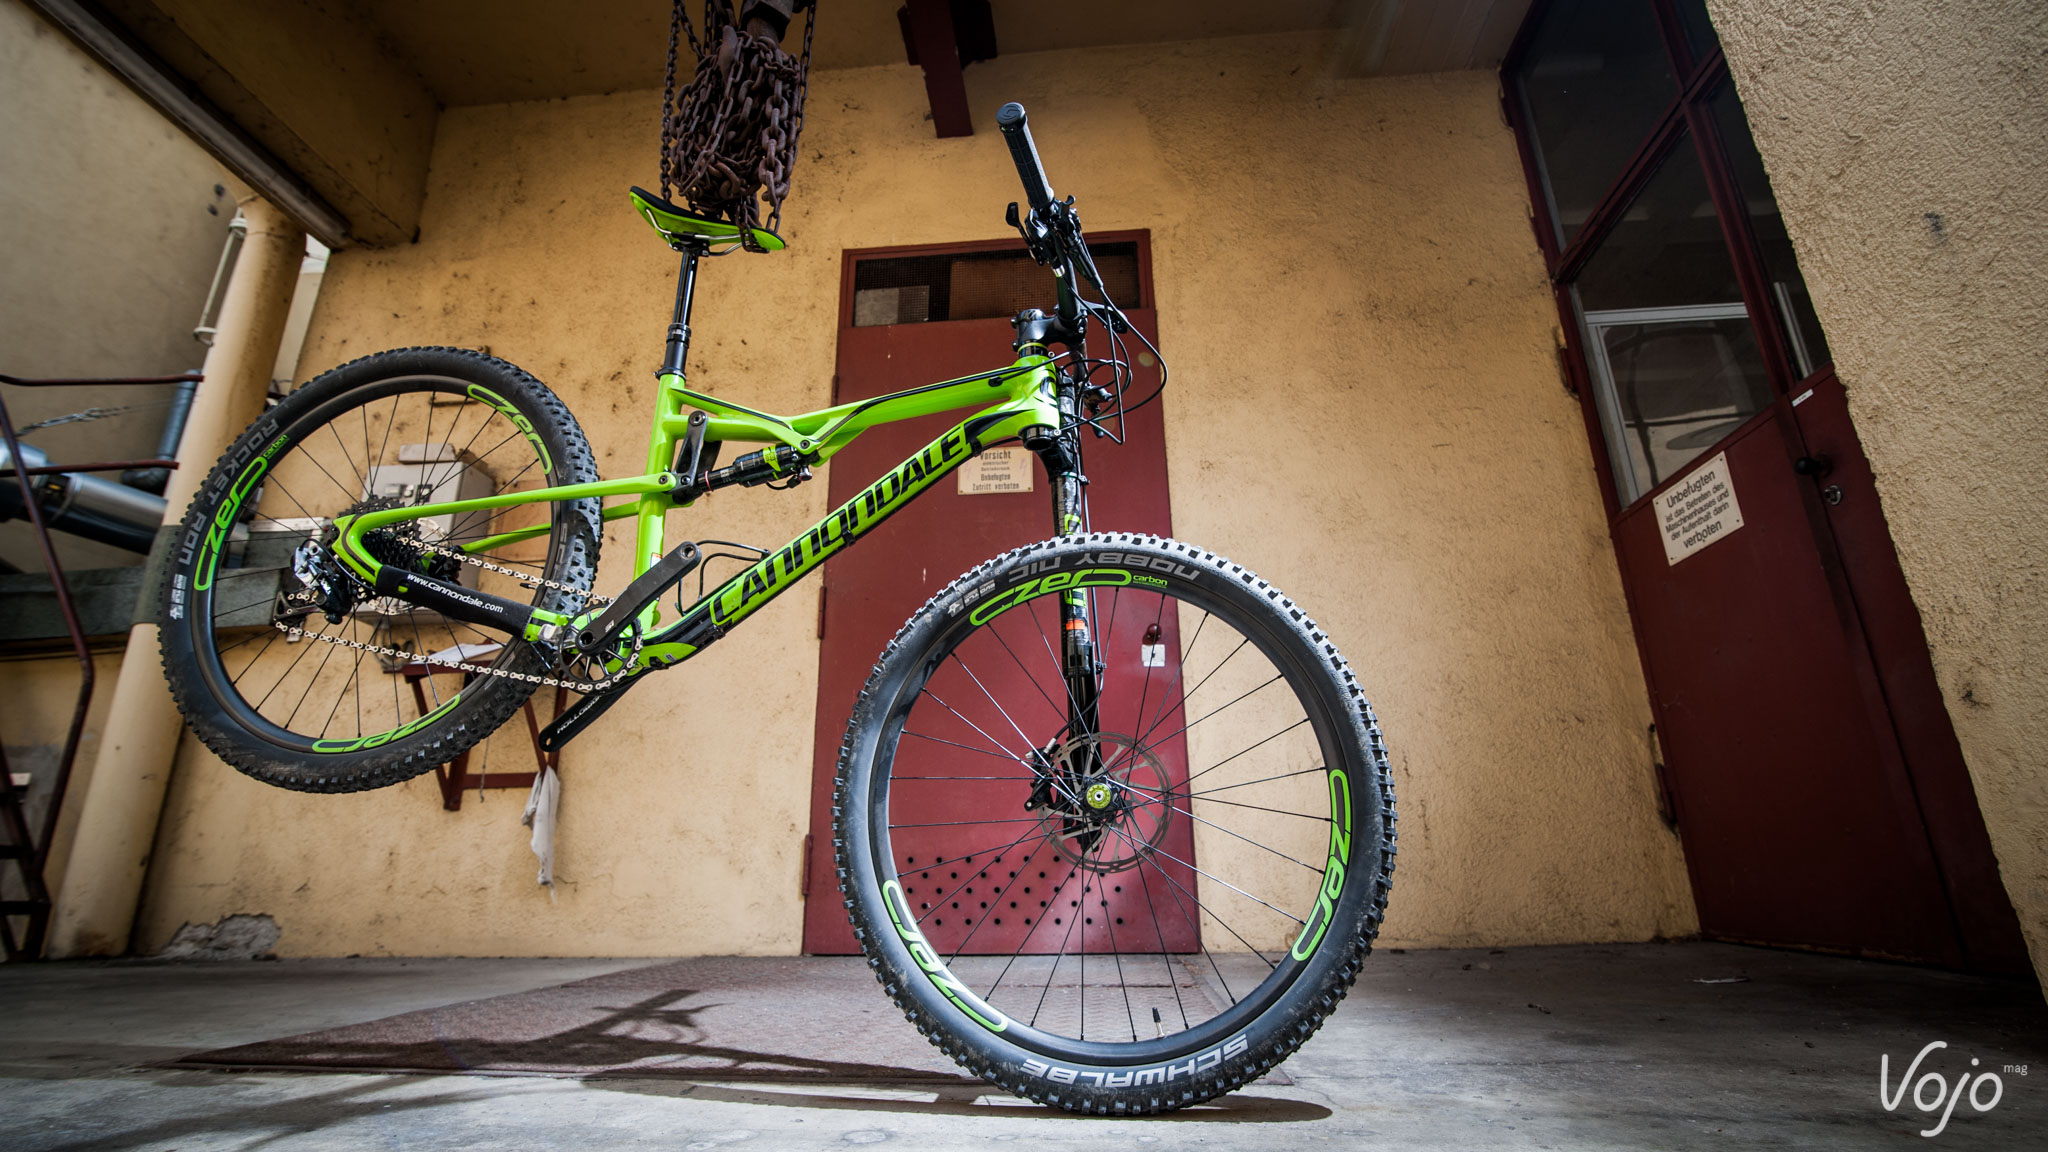 Cannondale-habit-2016-Hi-mod-1-vojo-paul-humbert-first-ride-12